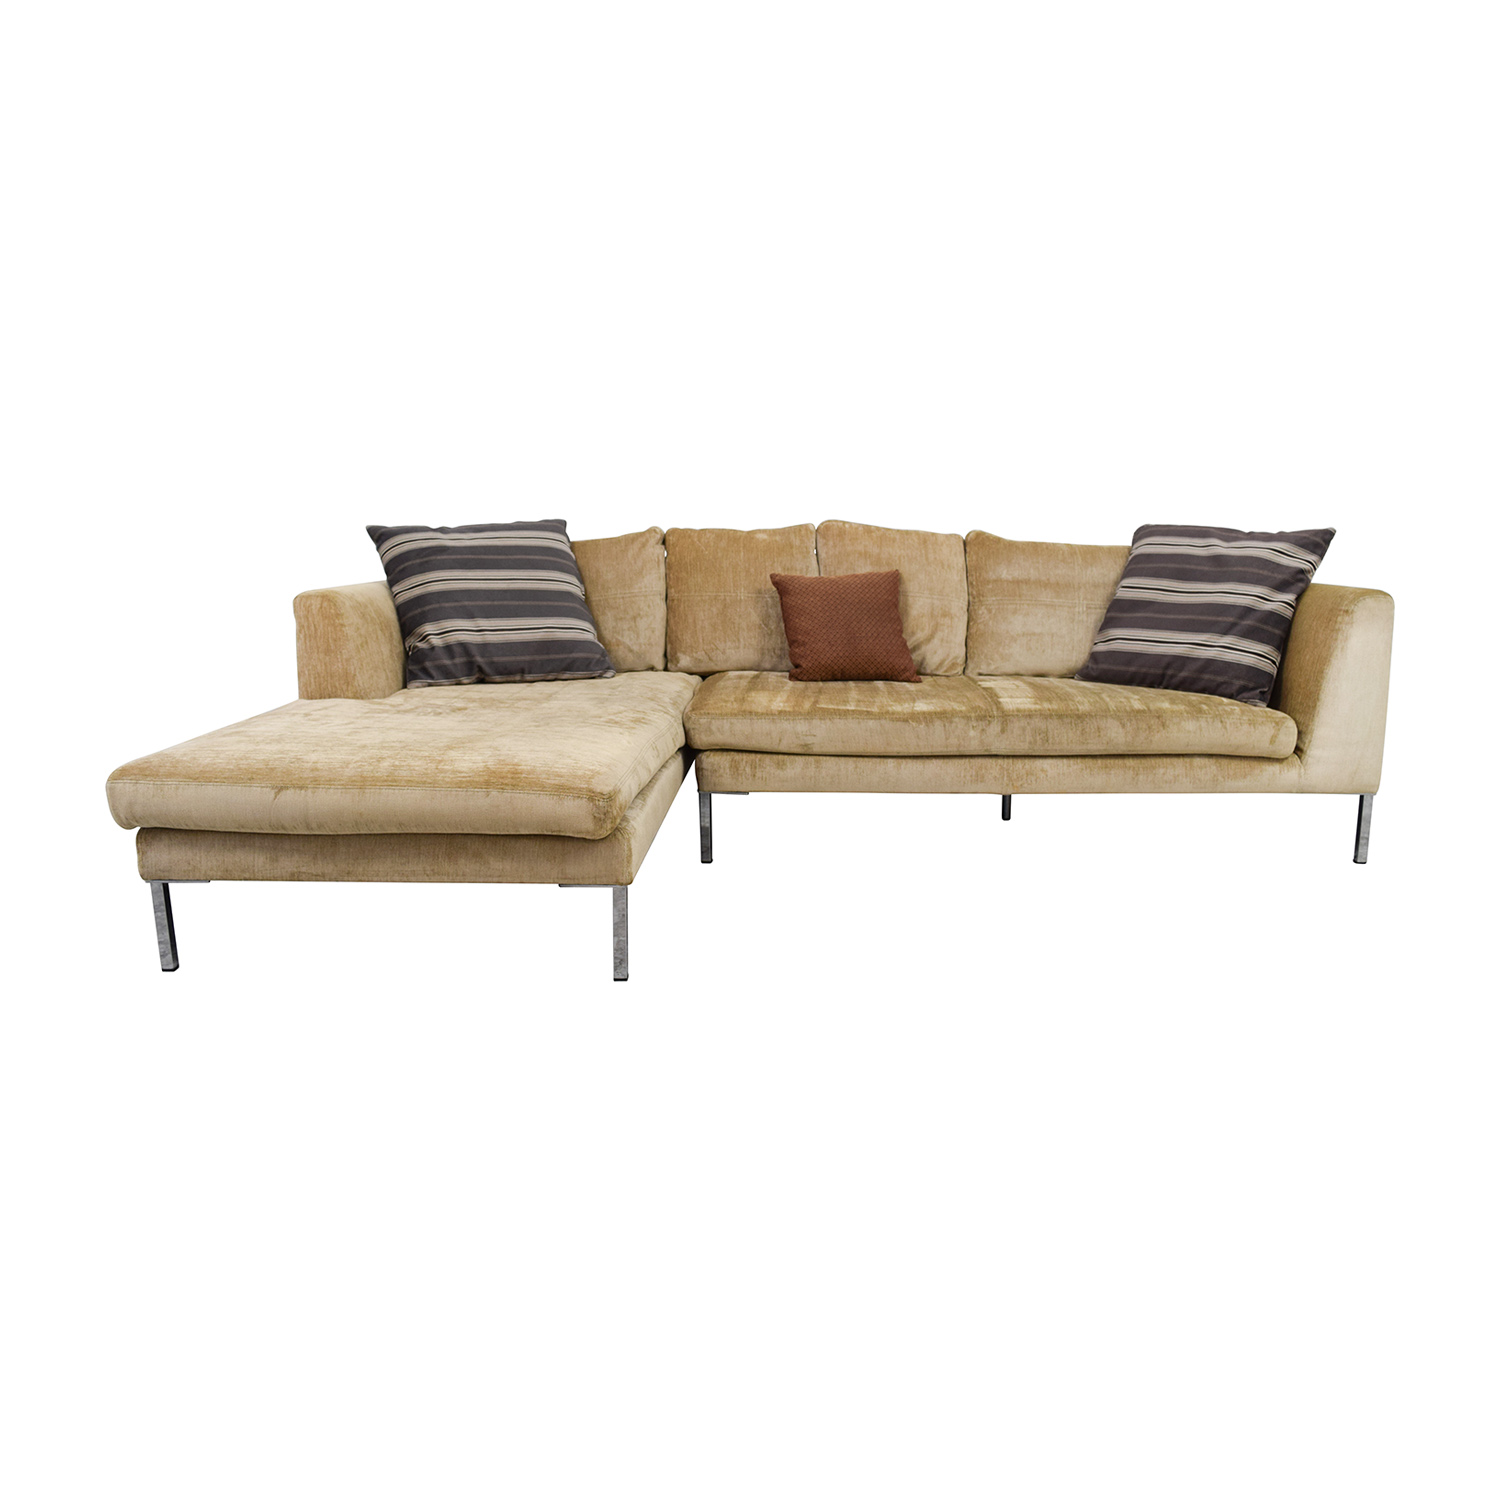 Modani Modani Beige Sectional Sofa coupon